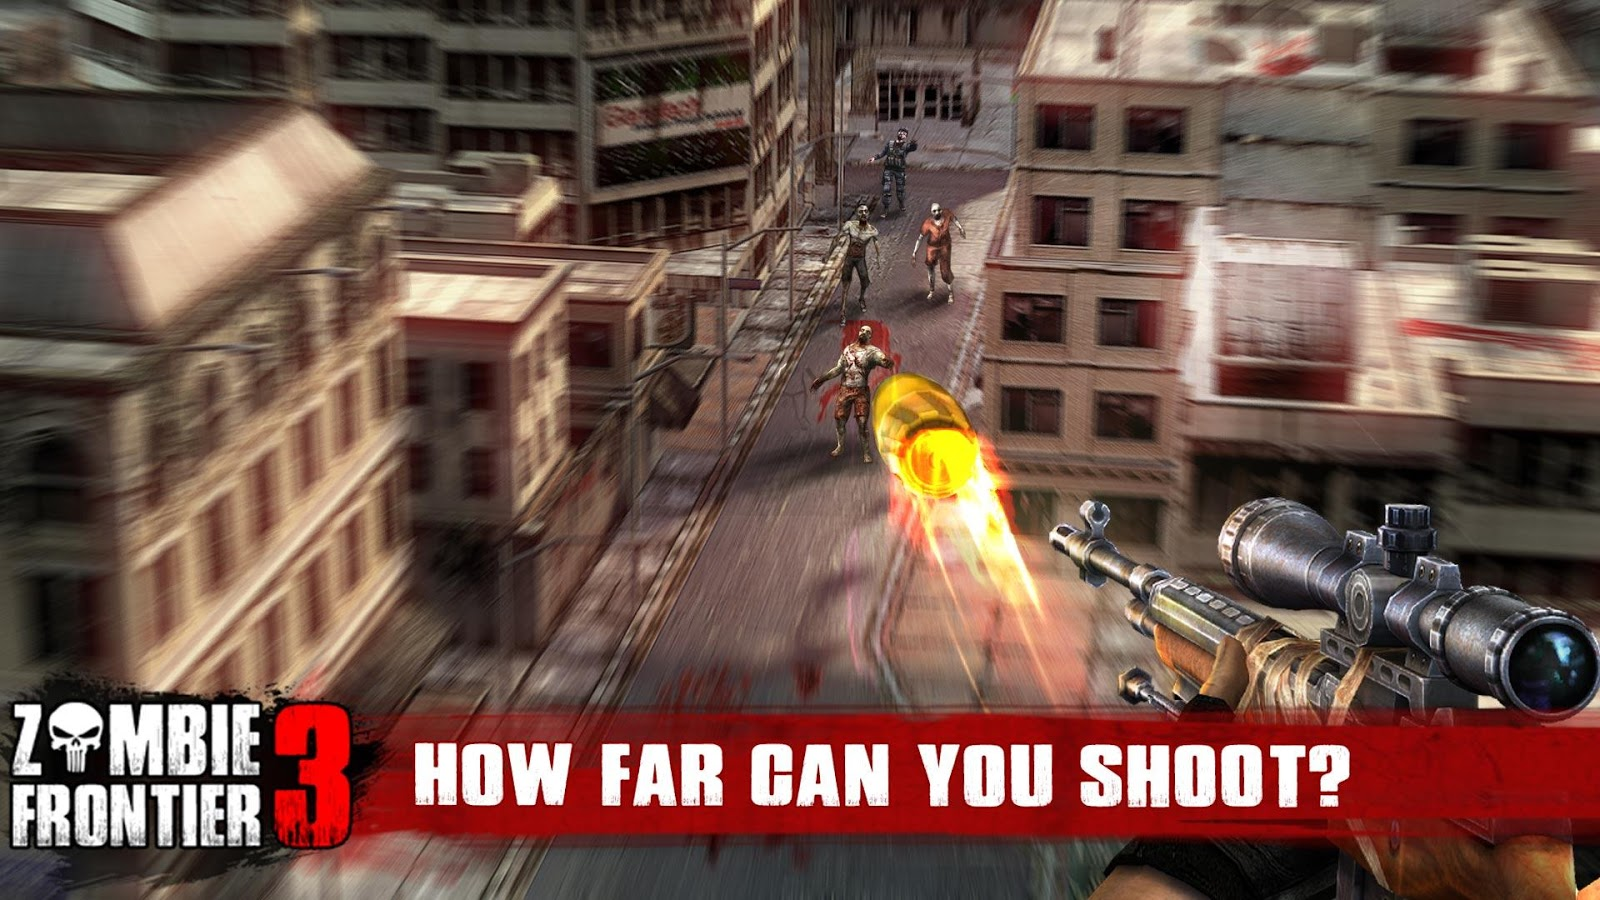 Zombie Frontier 3-Shoot Target Screenshot 6